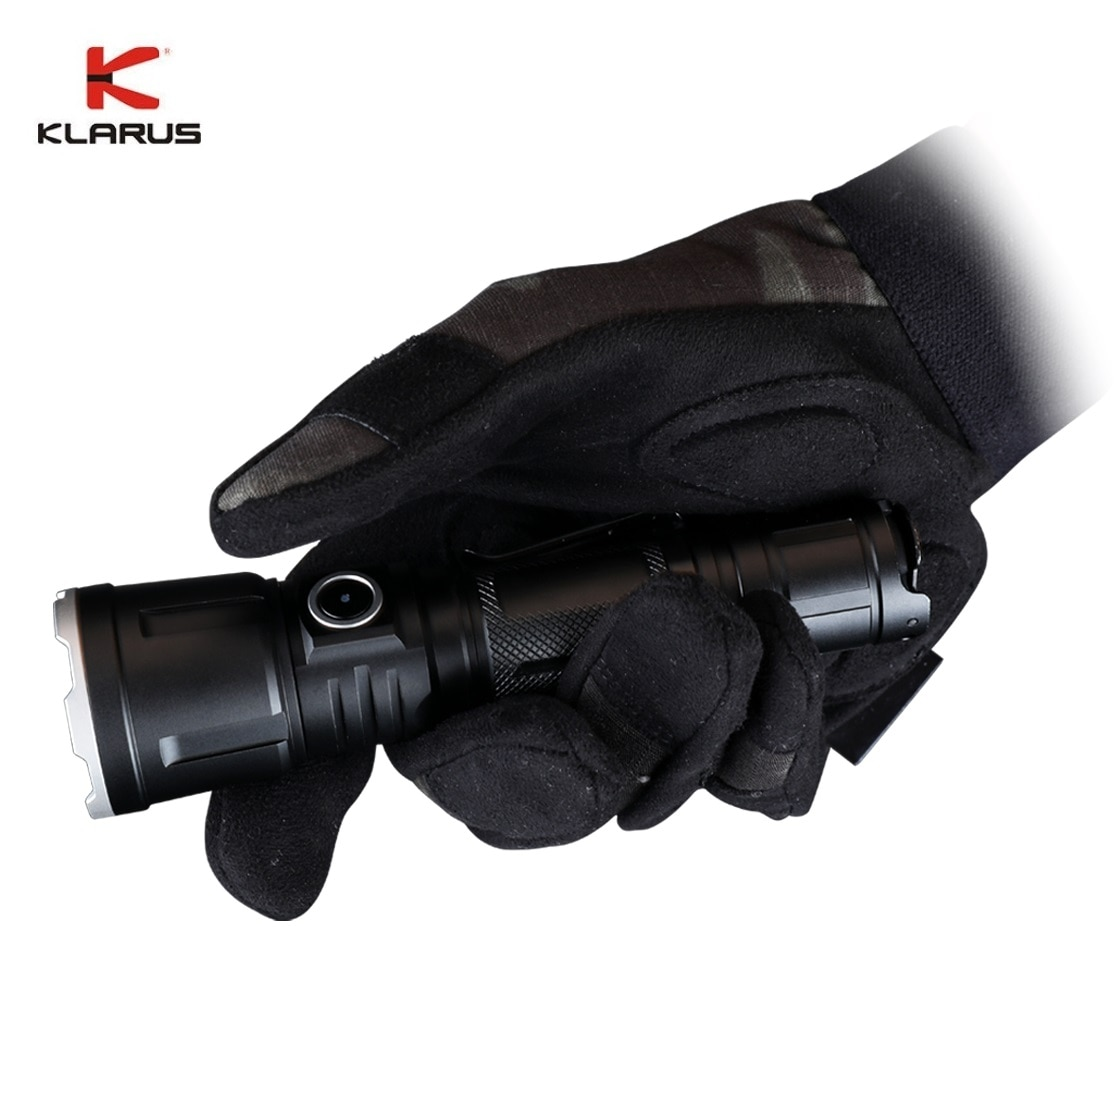 KLARUS XT11X Tactical Flashlight CREE XHP70.2 3200 Lm  High Power Rechargeable Flashlight with 18650 Battey for Search & Rescue enlarge